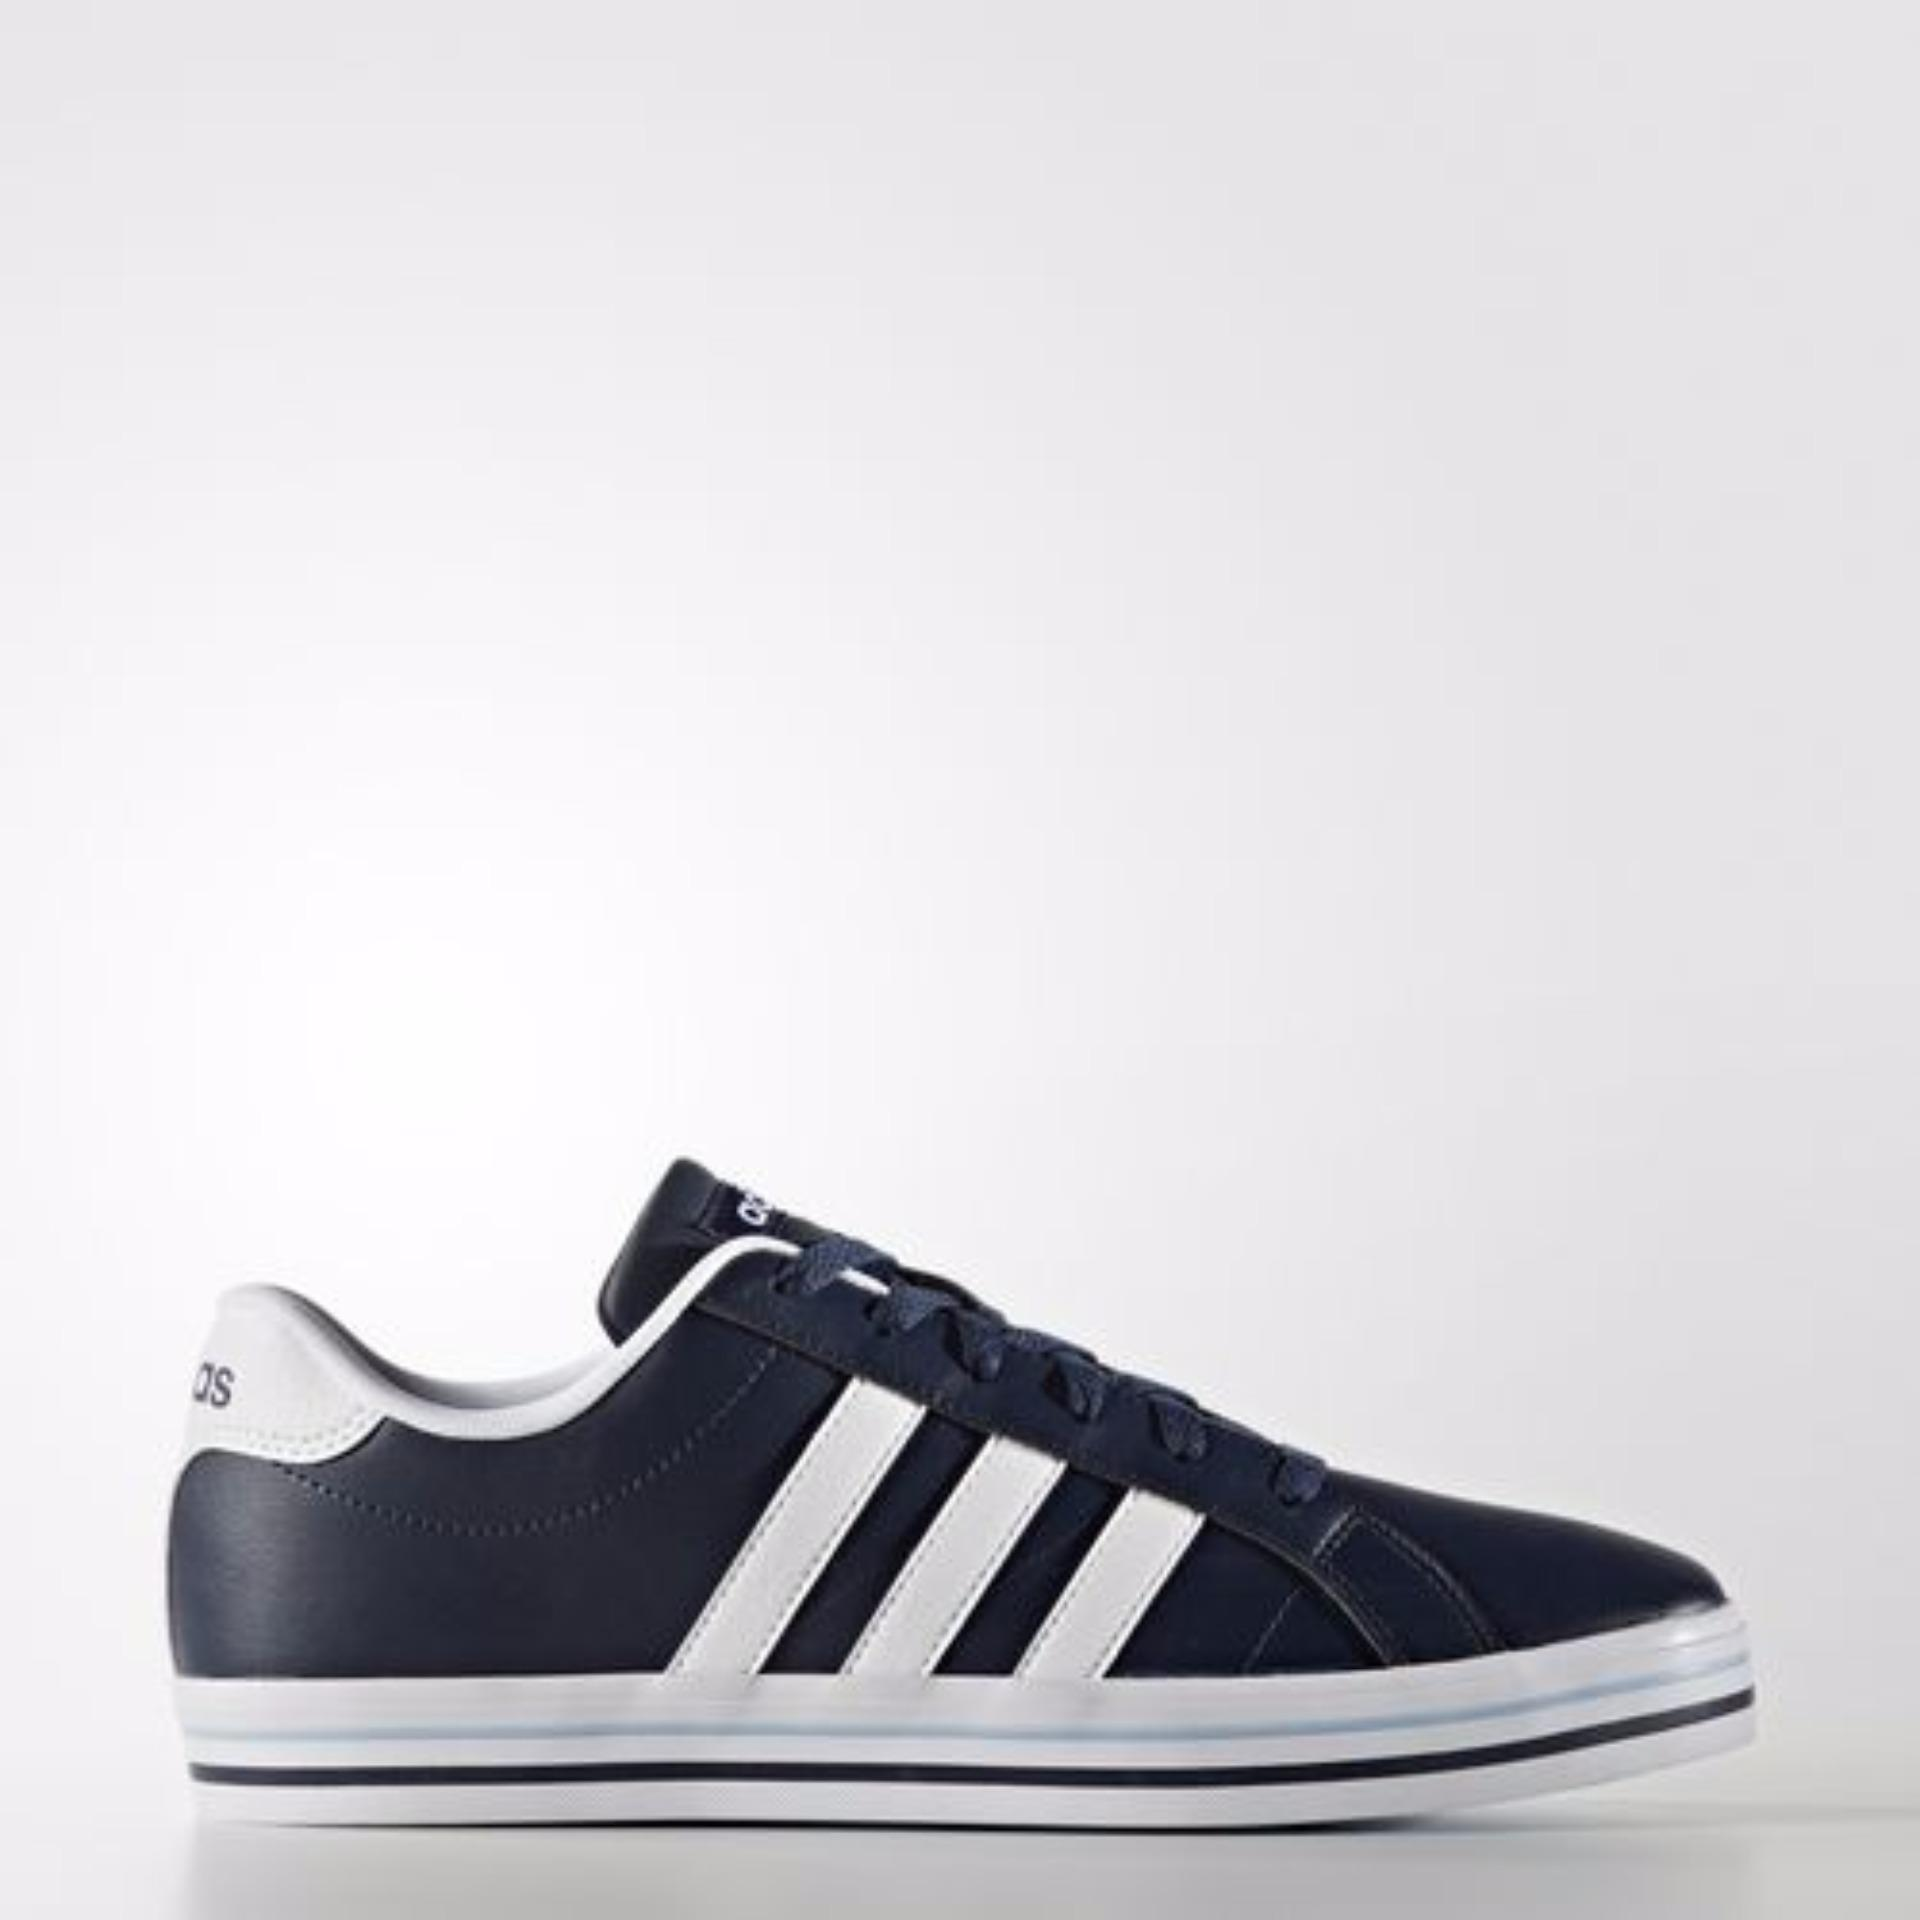 Adidas Neo Men S Weekly Sneakers Aw5199 Indonesia Diskon 50